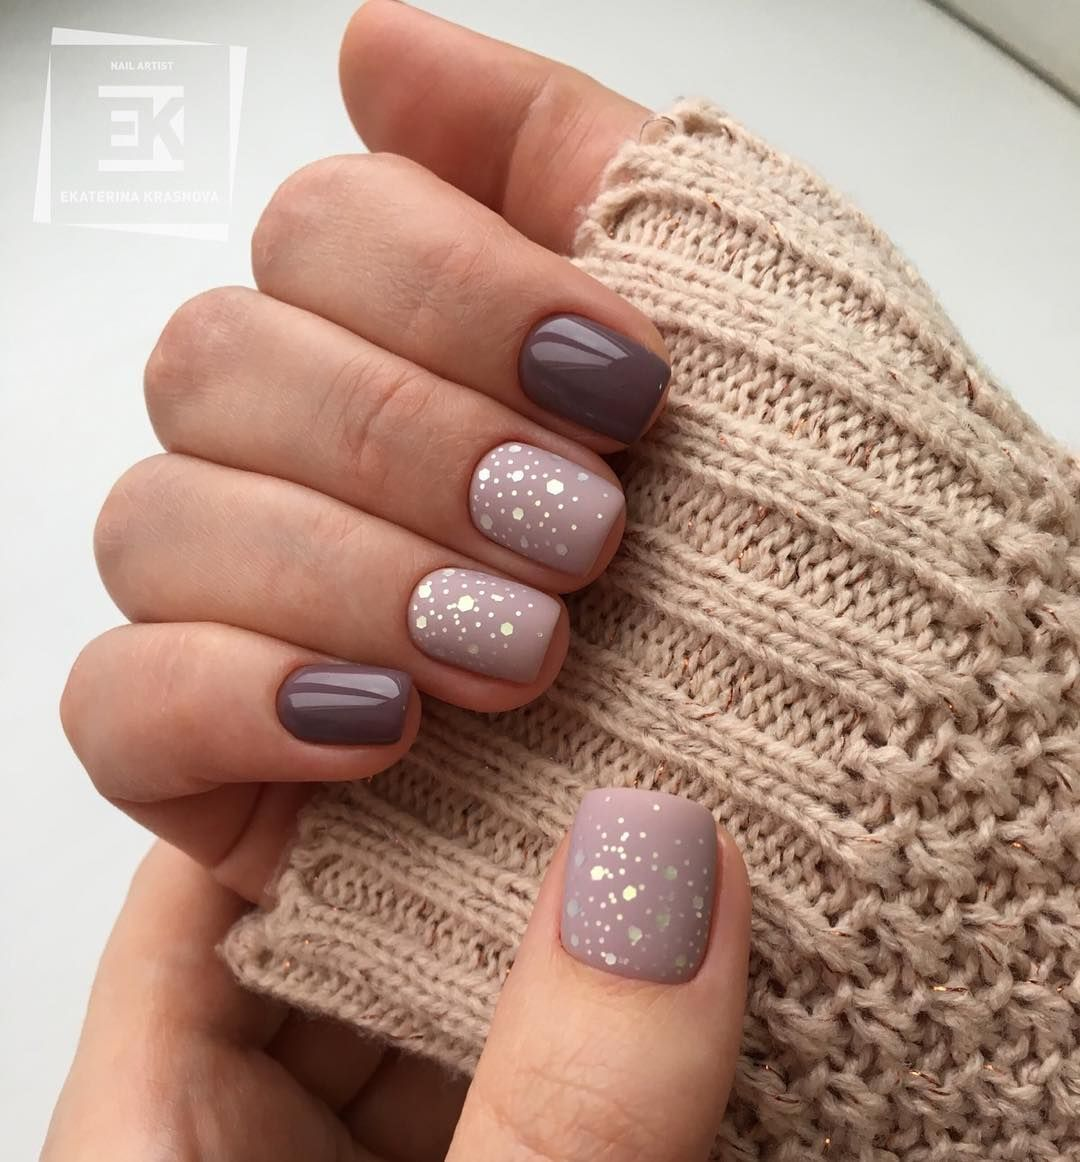 16 Stunning Nail Art Trend Ideas For 2020 With Images Ladne